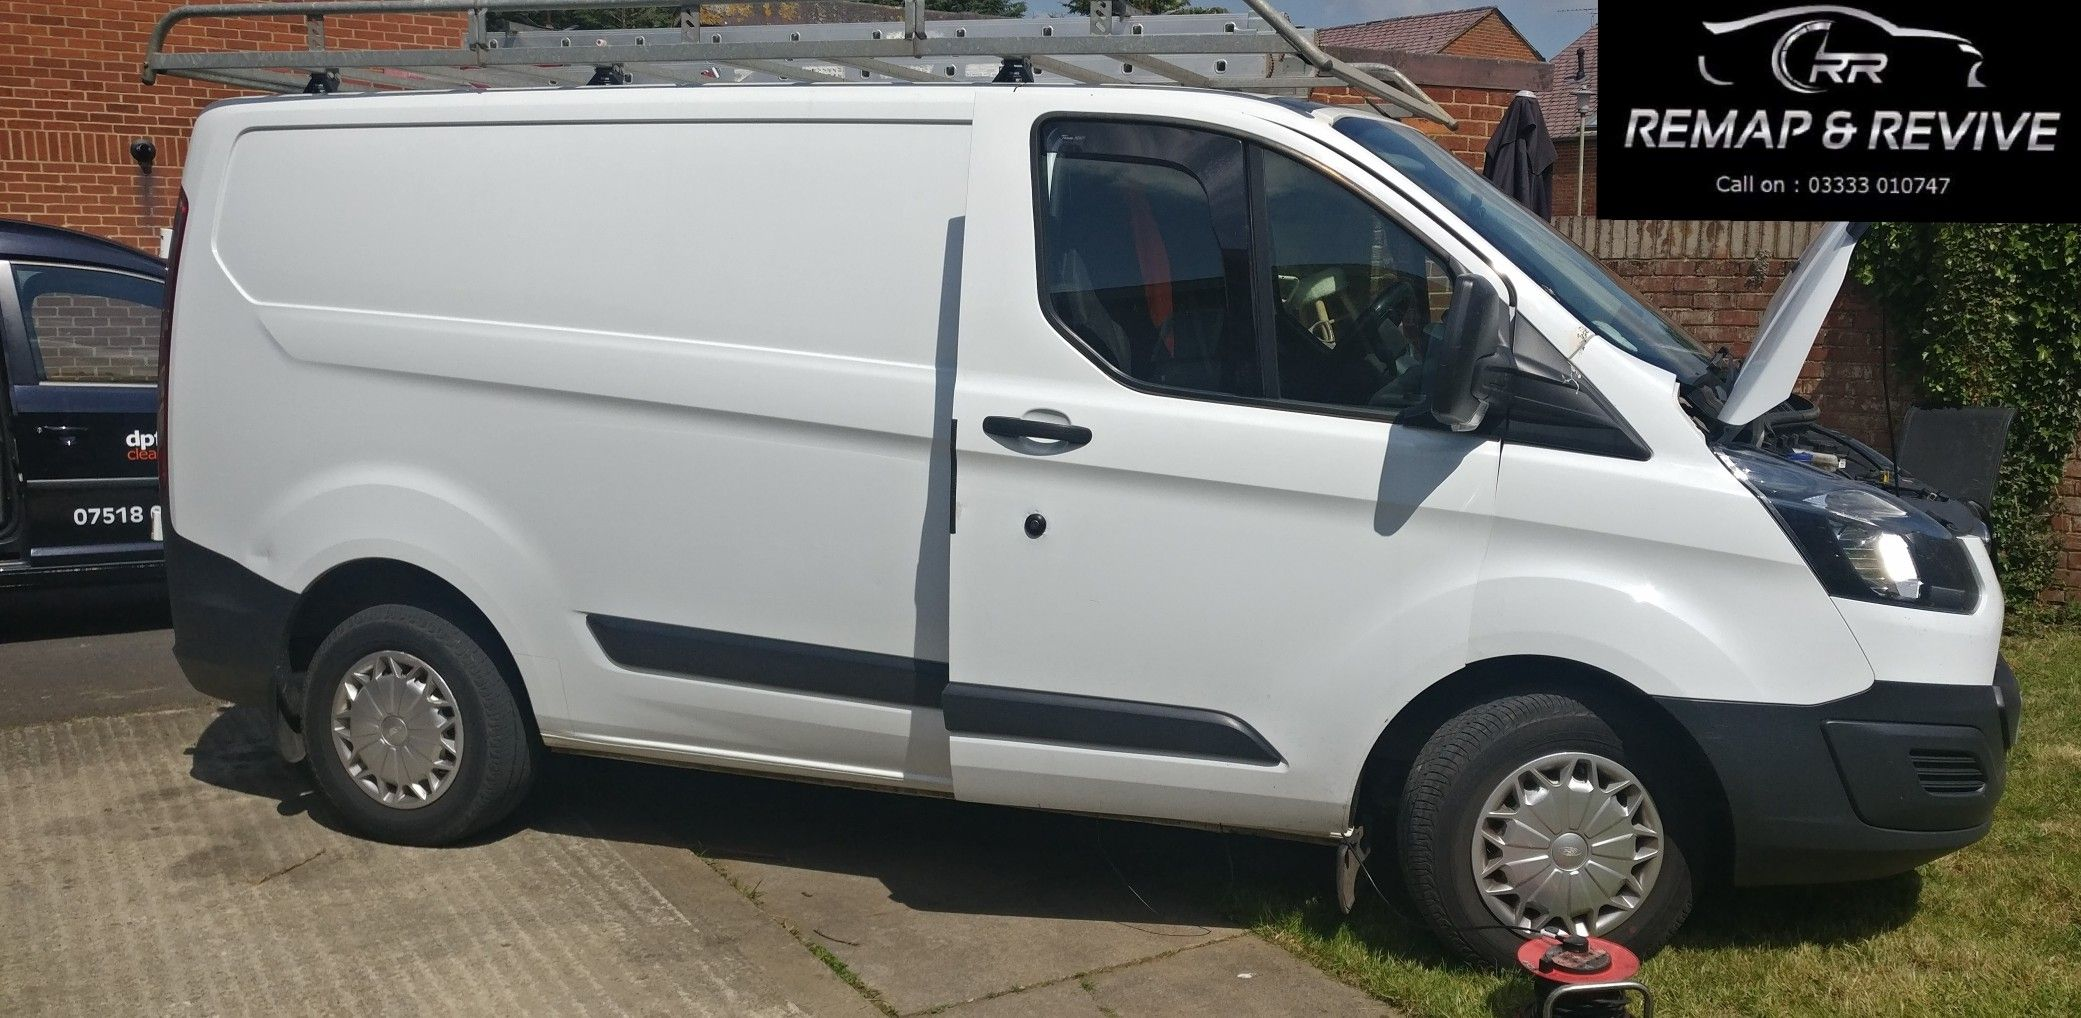 Ford Transit Van Ecu Engine Tuning Remap Fuel Economy Ford Transit Vans